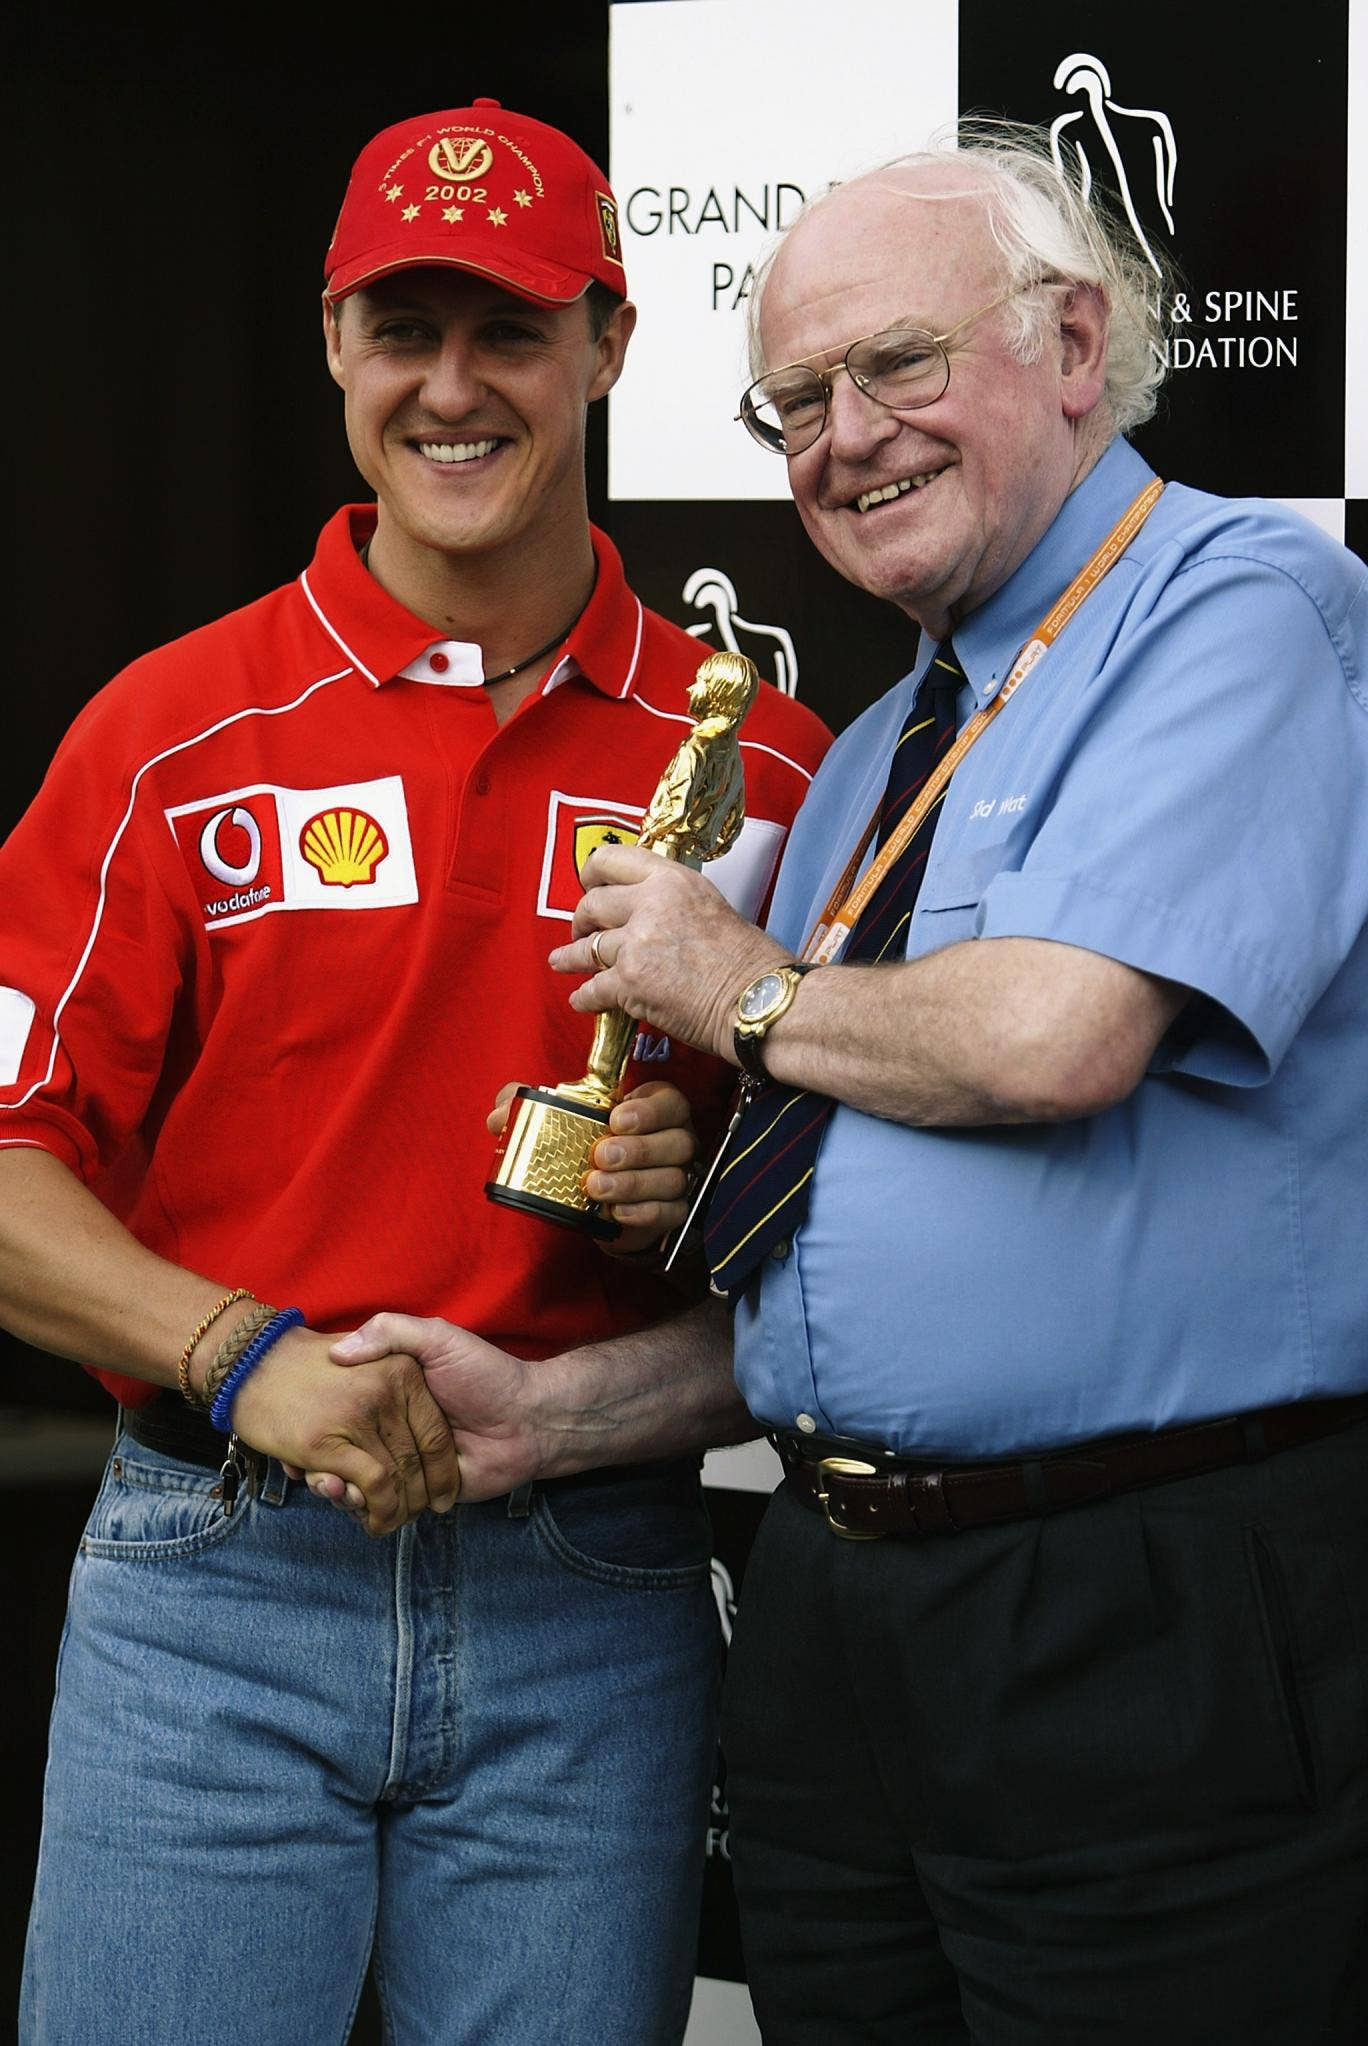 Sid Watkins (right) with former champion Michael Schumacher